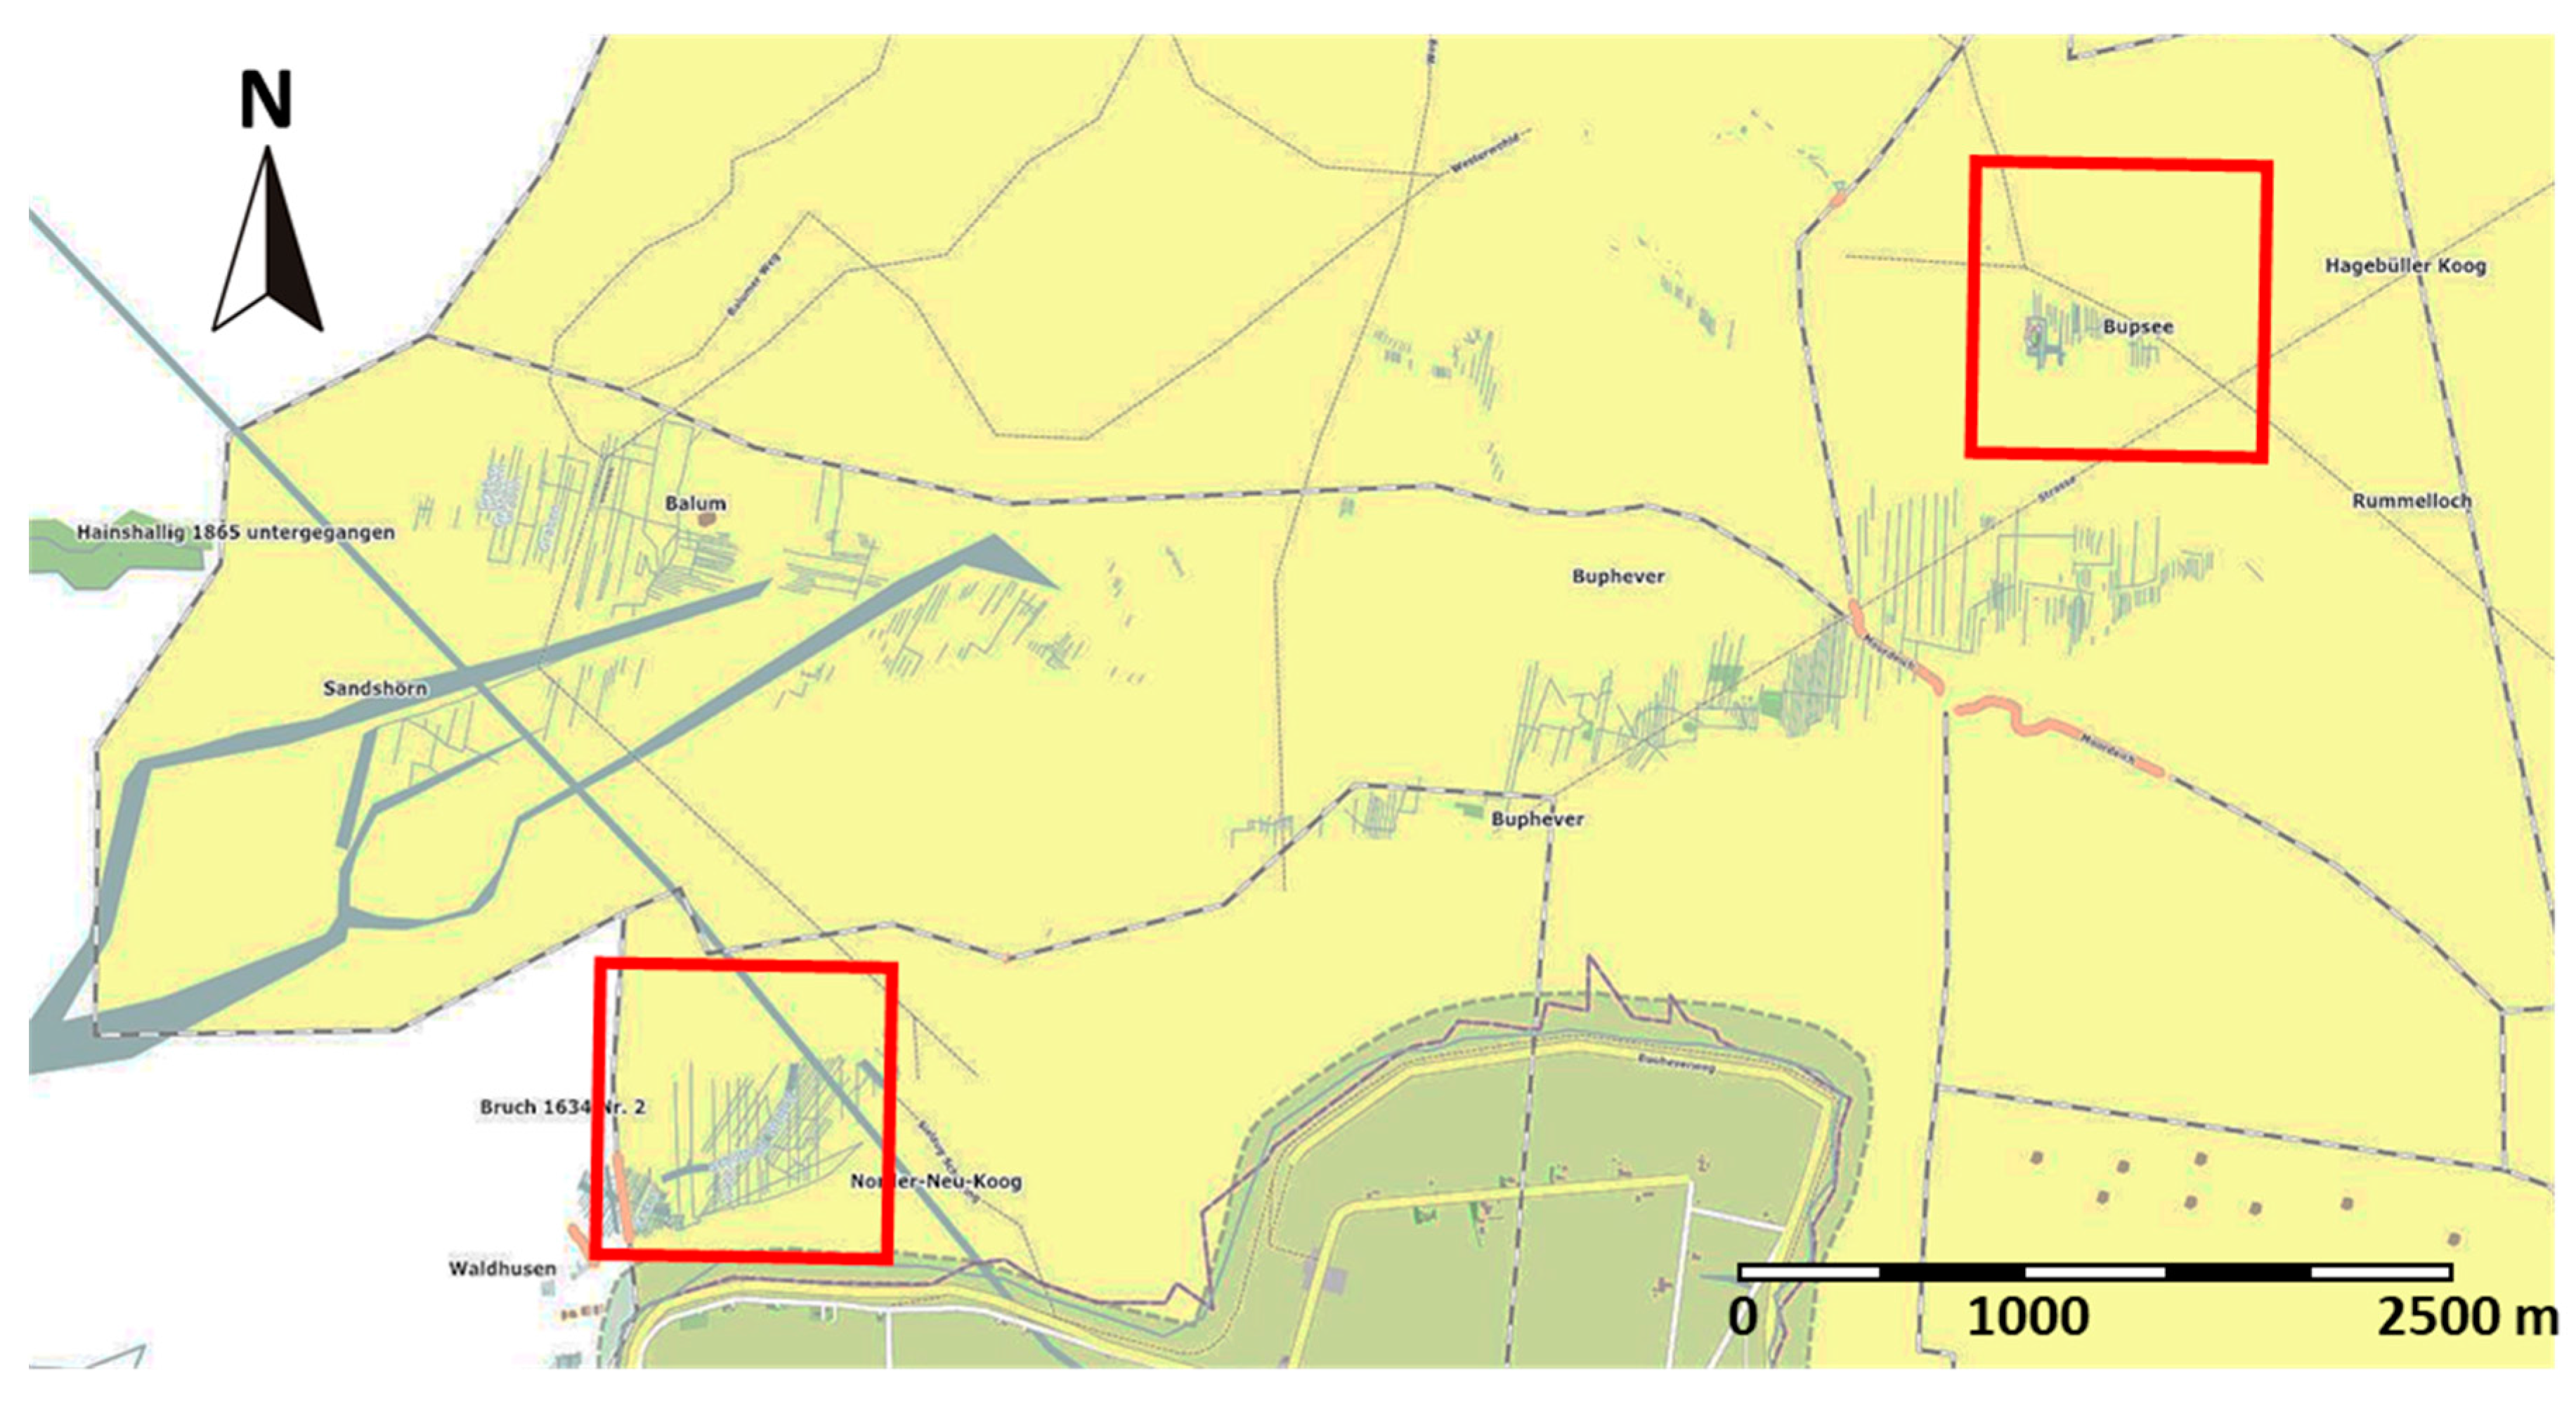 Geosciences Special Issue Remote Sensing And Geosciences For - Groundwater prospect map of egypt's qena valley